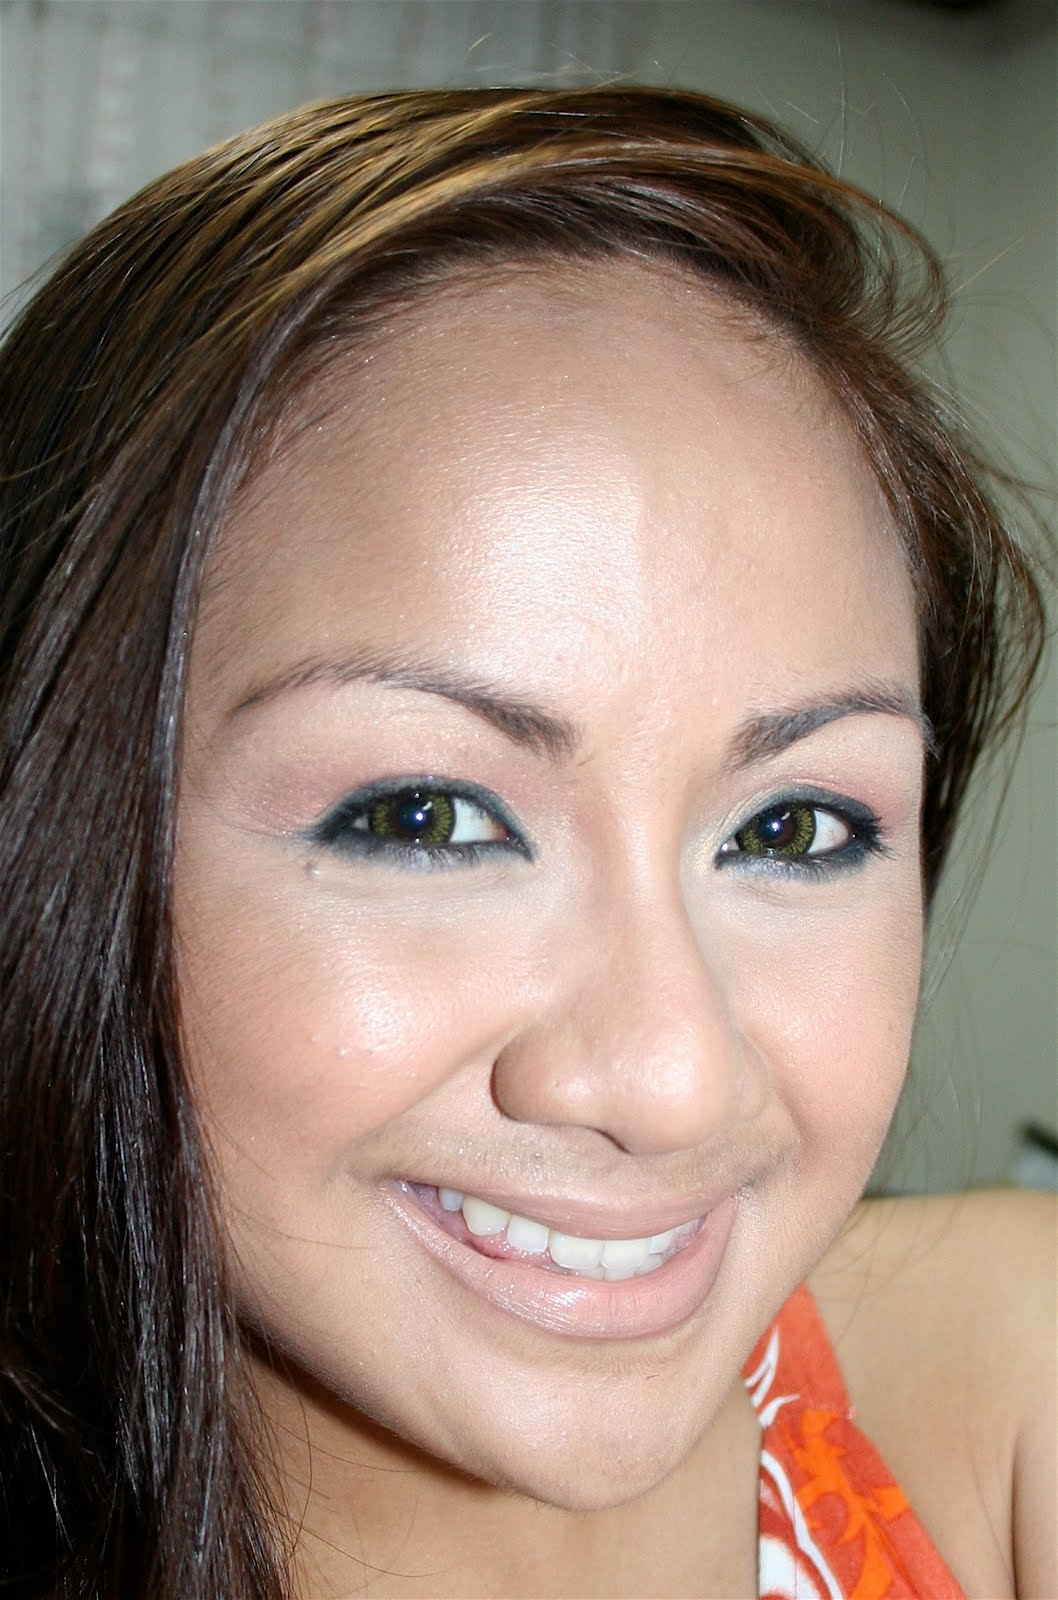 Beauty Junkie I E Caby Mac Eye Shadow: Beauty Junkie I.e Caby: FOTD Inspired By Makeup By Mario